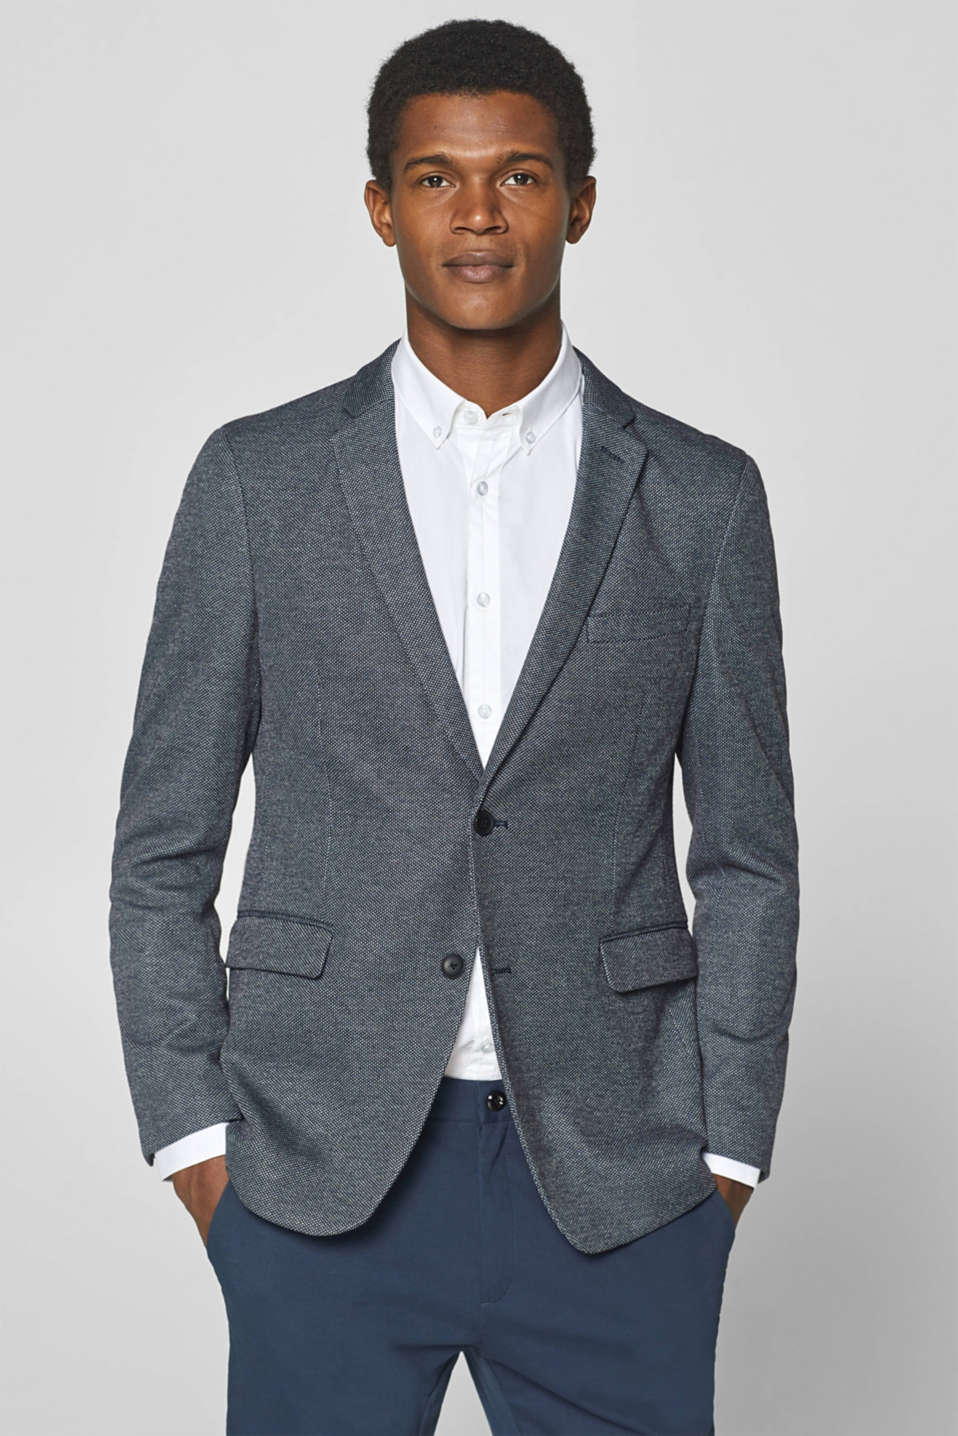 Esprit - 2-tone tailored jacket with a fine texture